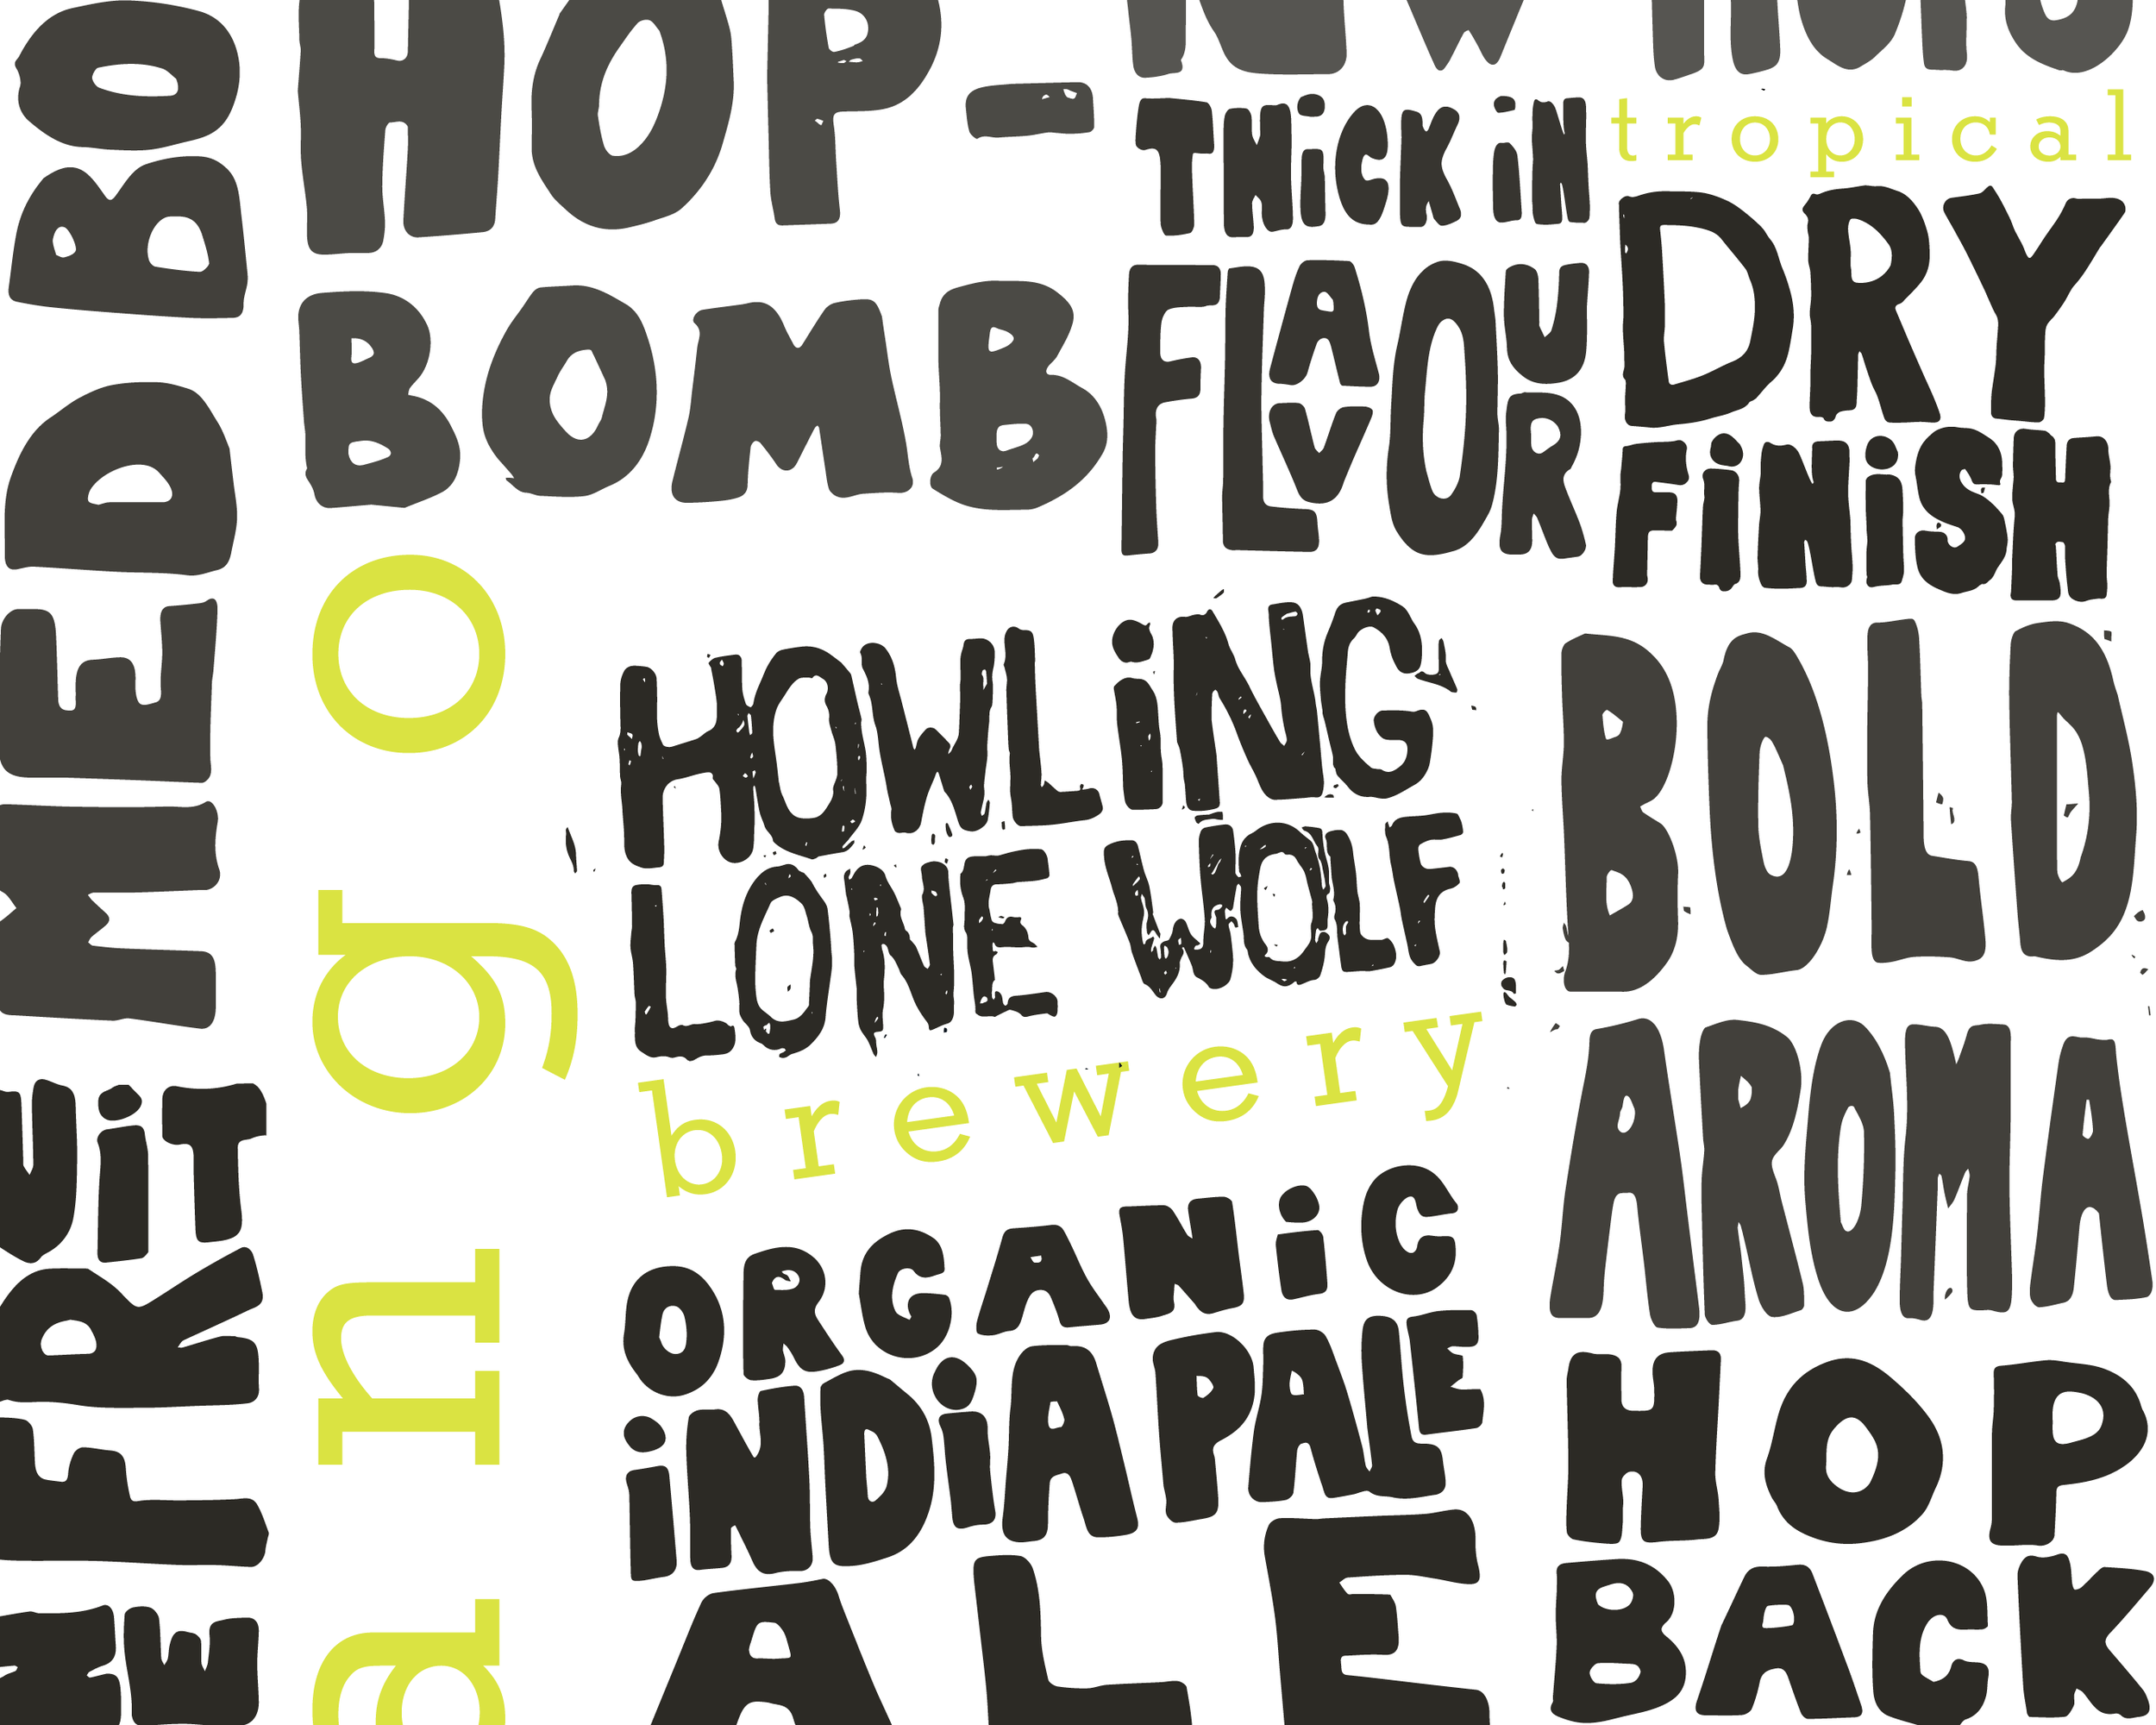 HOWLING LONE WOLF BREWERY| IDENTITY & PACKAGING - This unique, local brewery released three new summer brews for their taproom grand-opening. The brewery packaging features bright bold colors to balance the dark gritty hand-lettered texture found on the label.